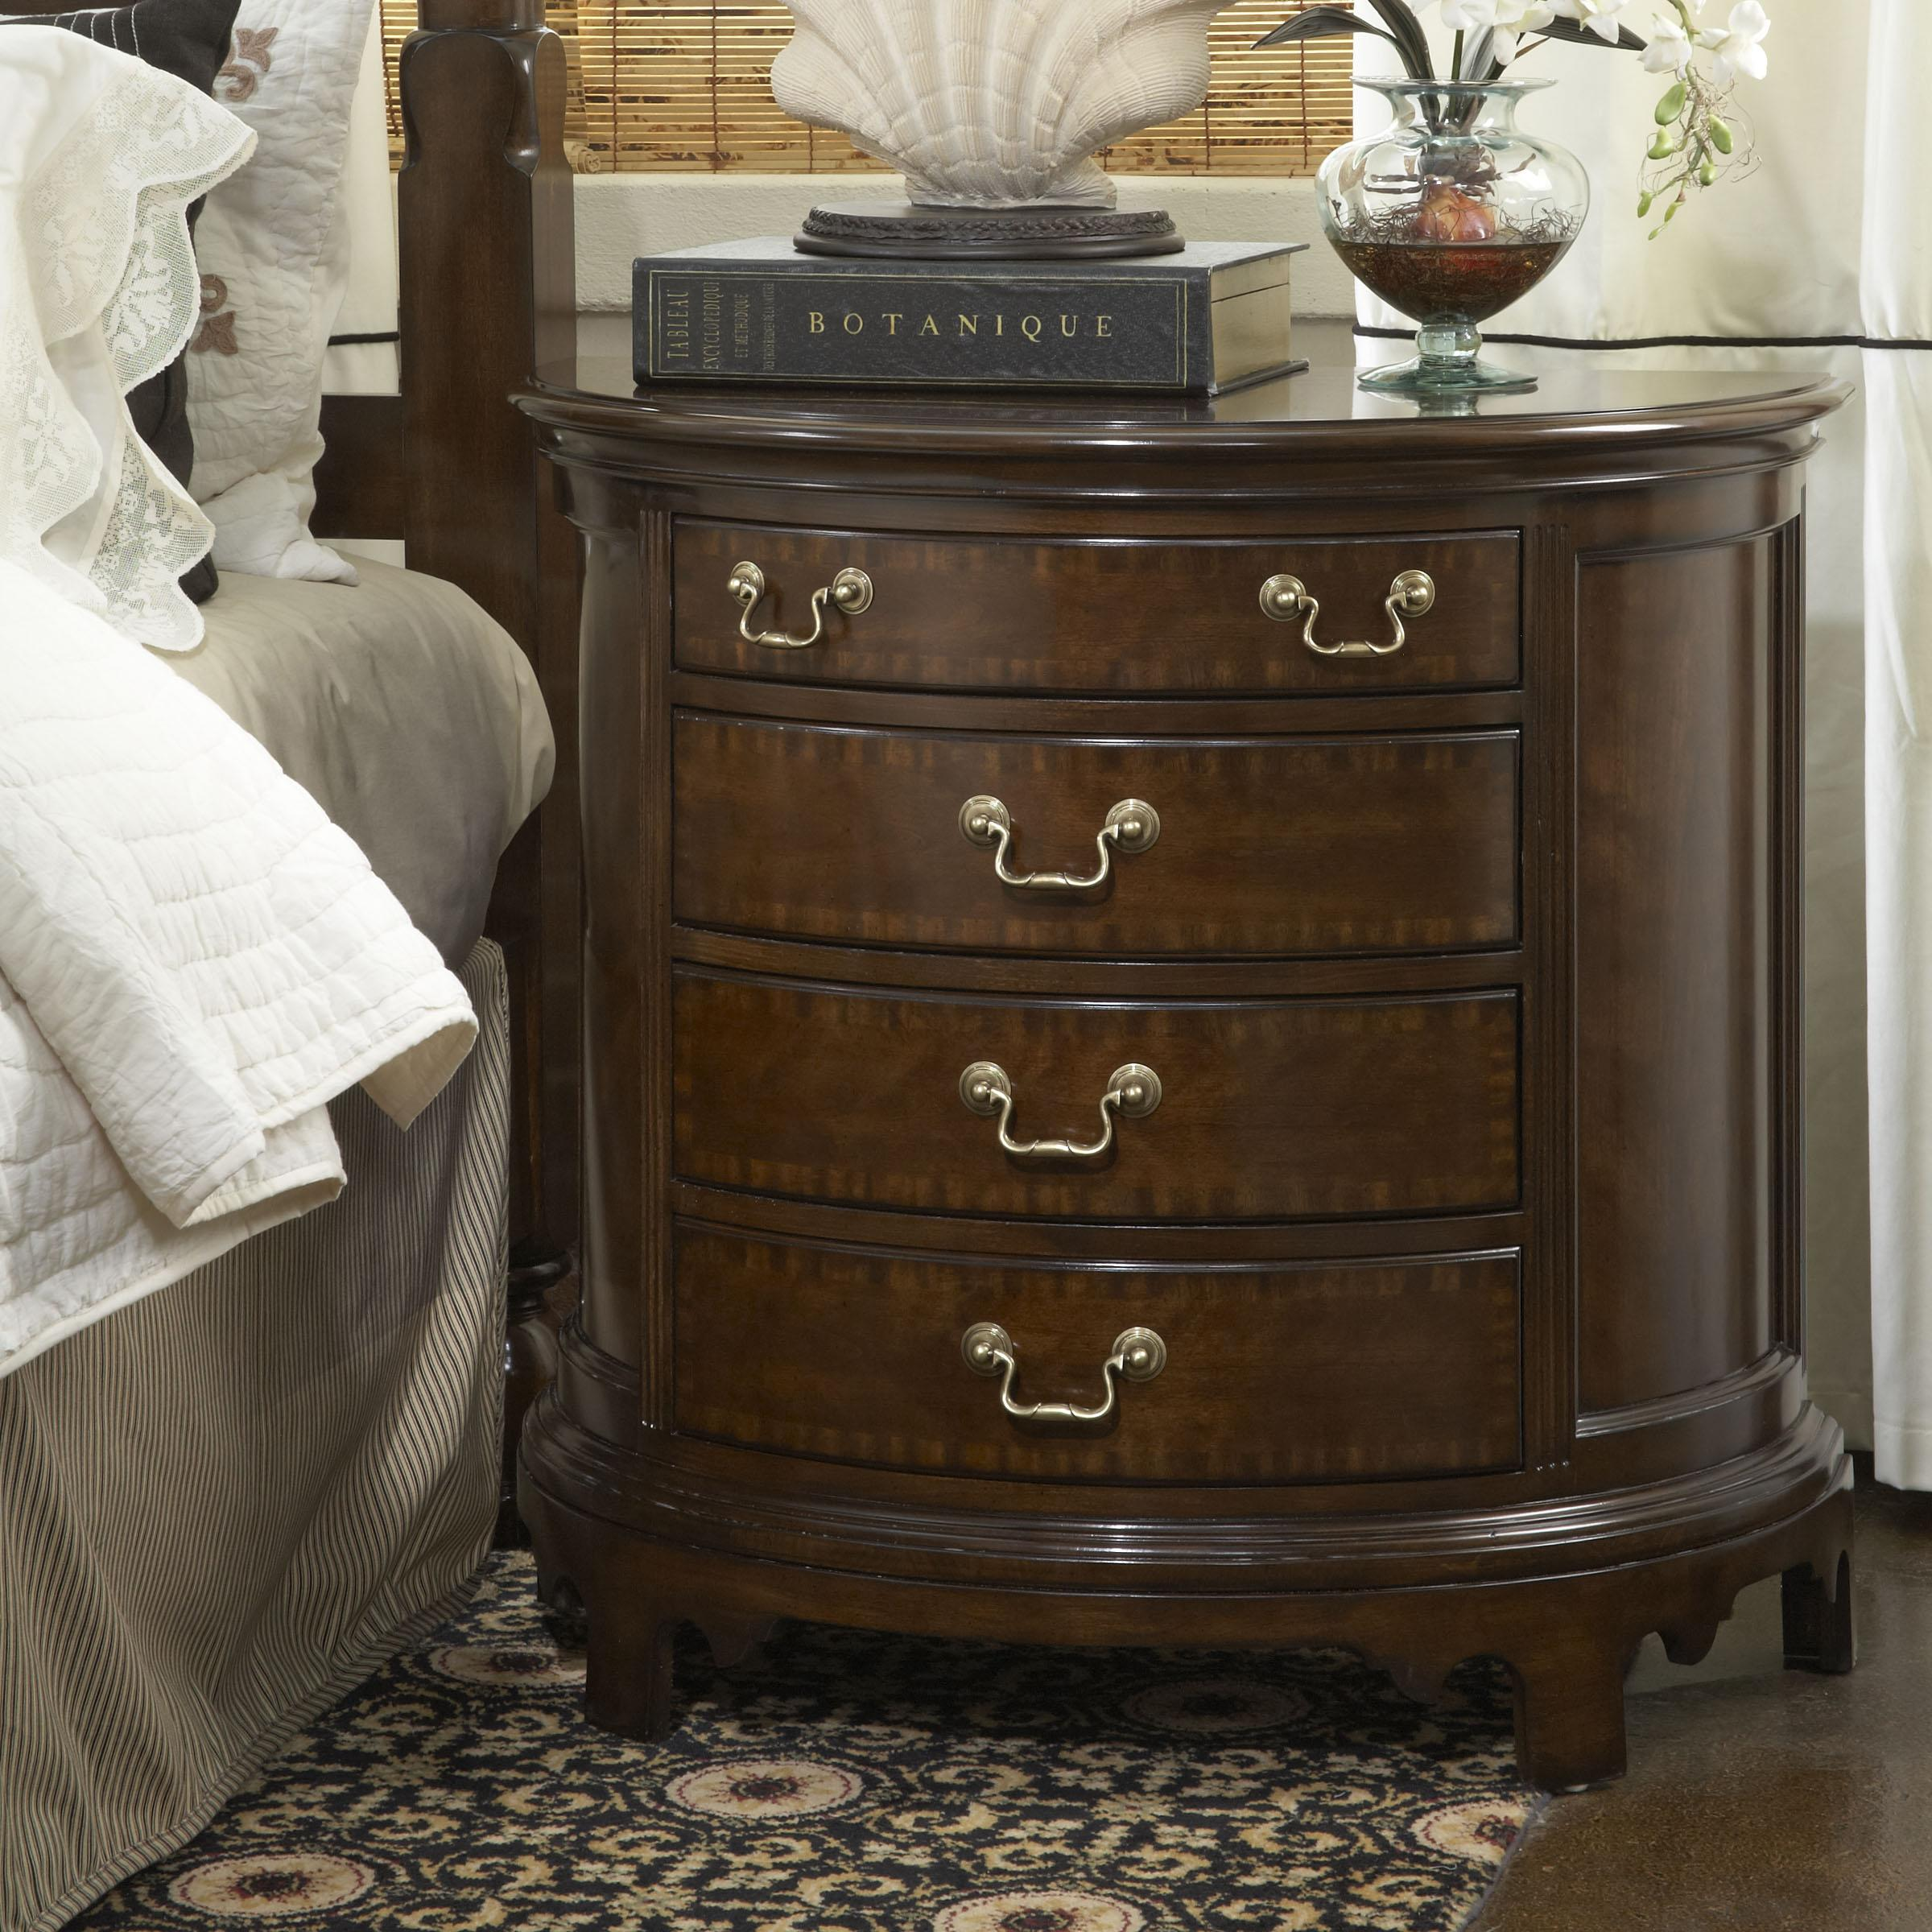 Belfort Signature Belmont Norfolk Demilune Chest - Item Number: 1020-104